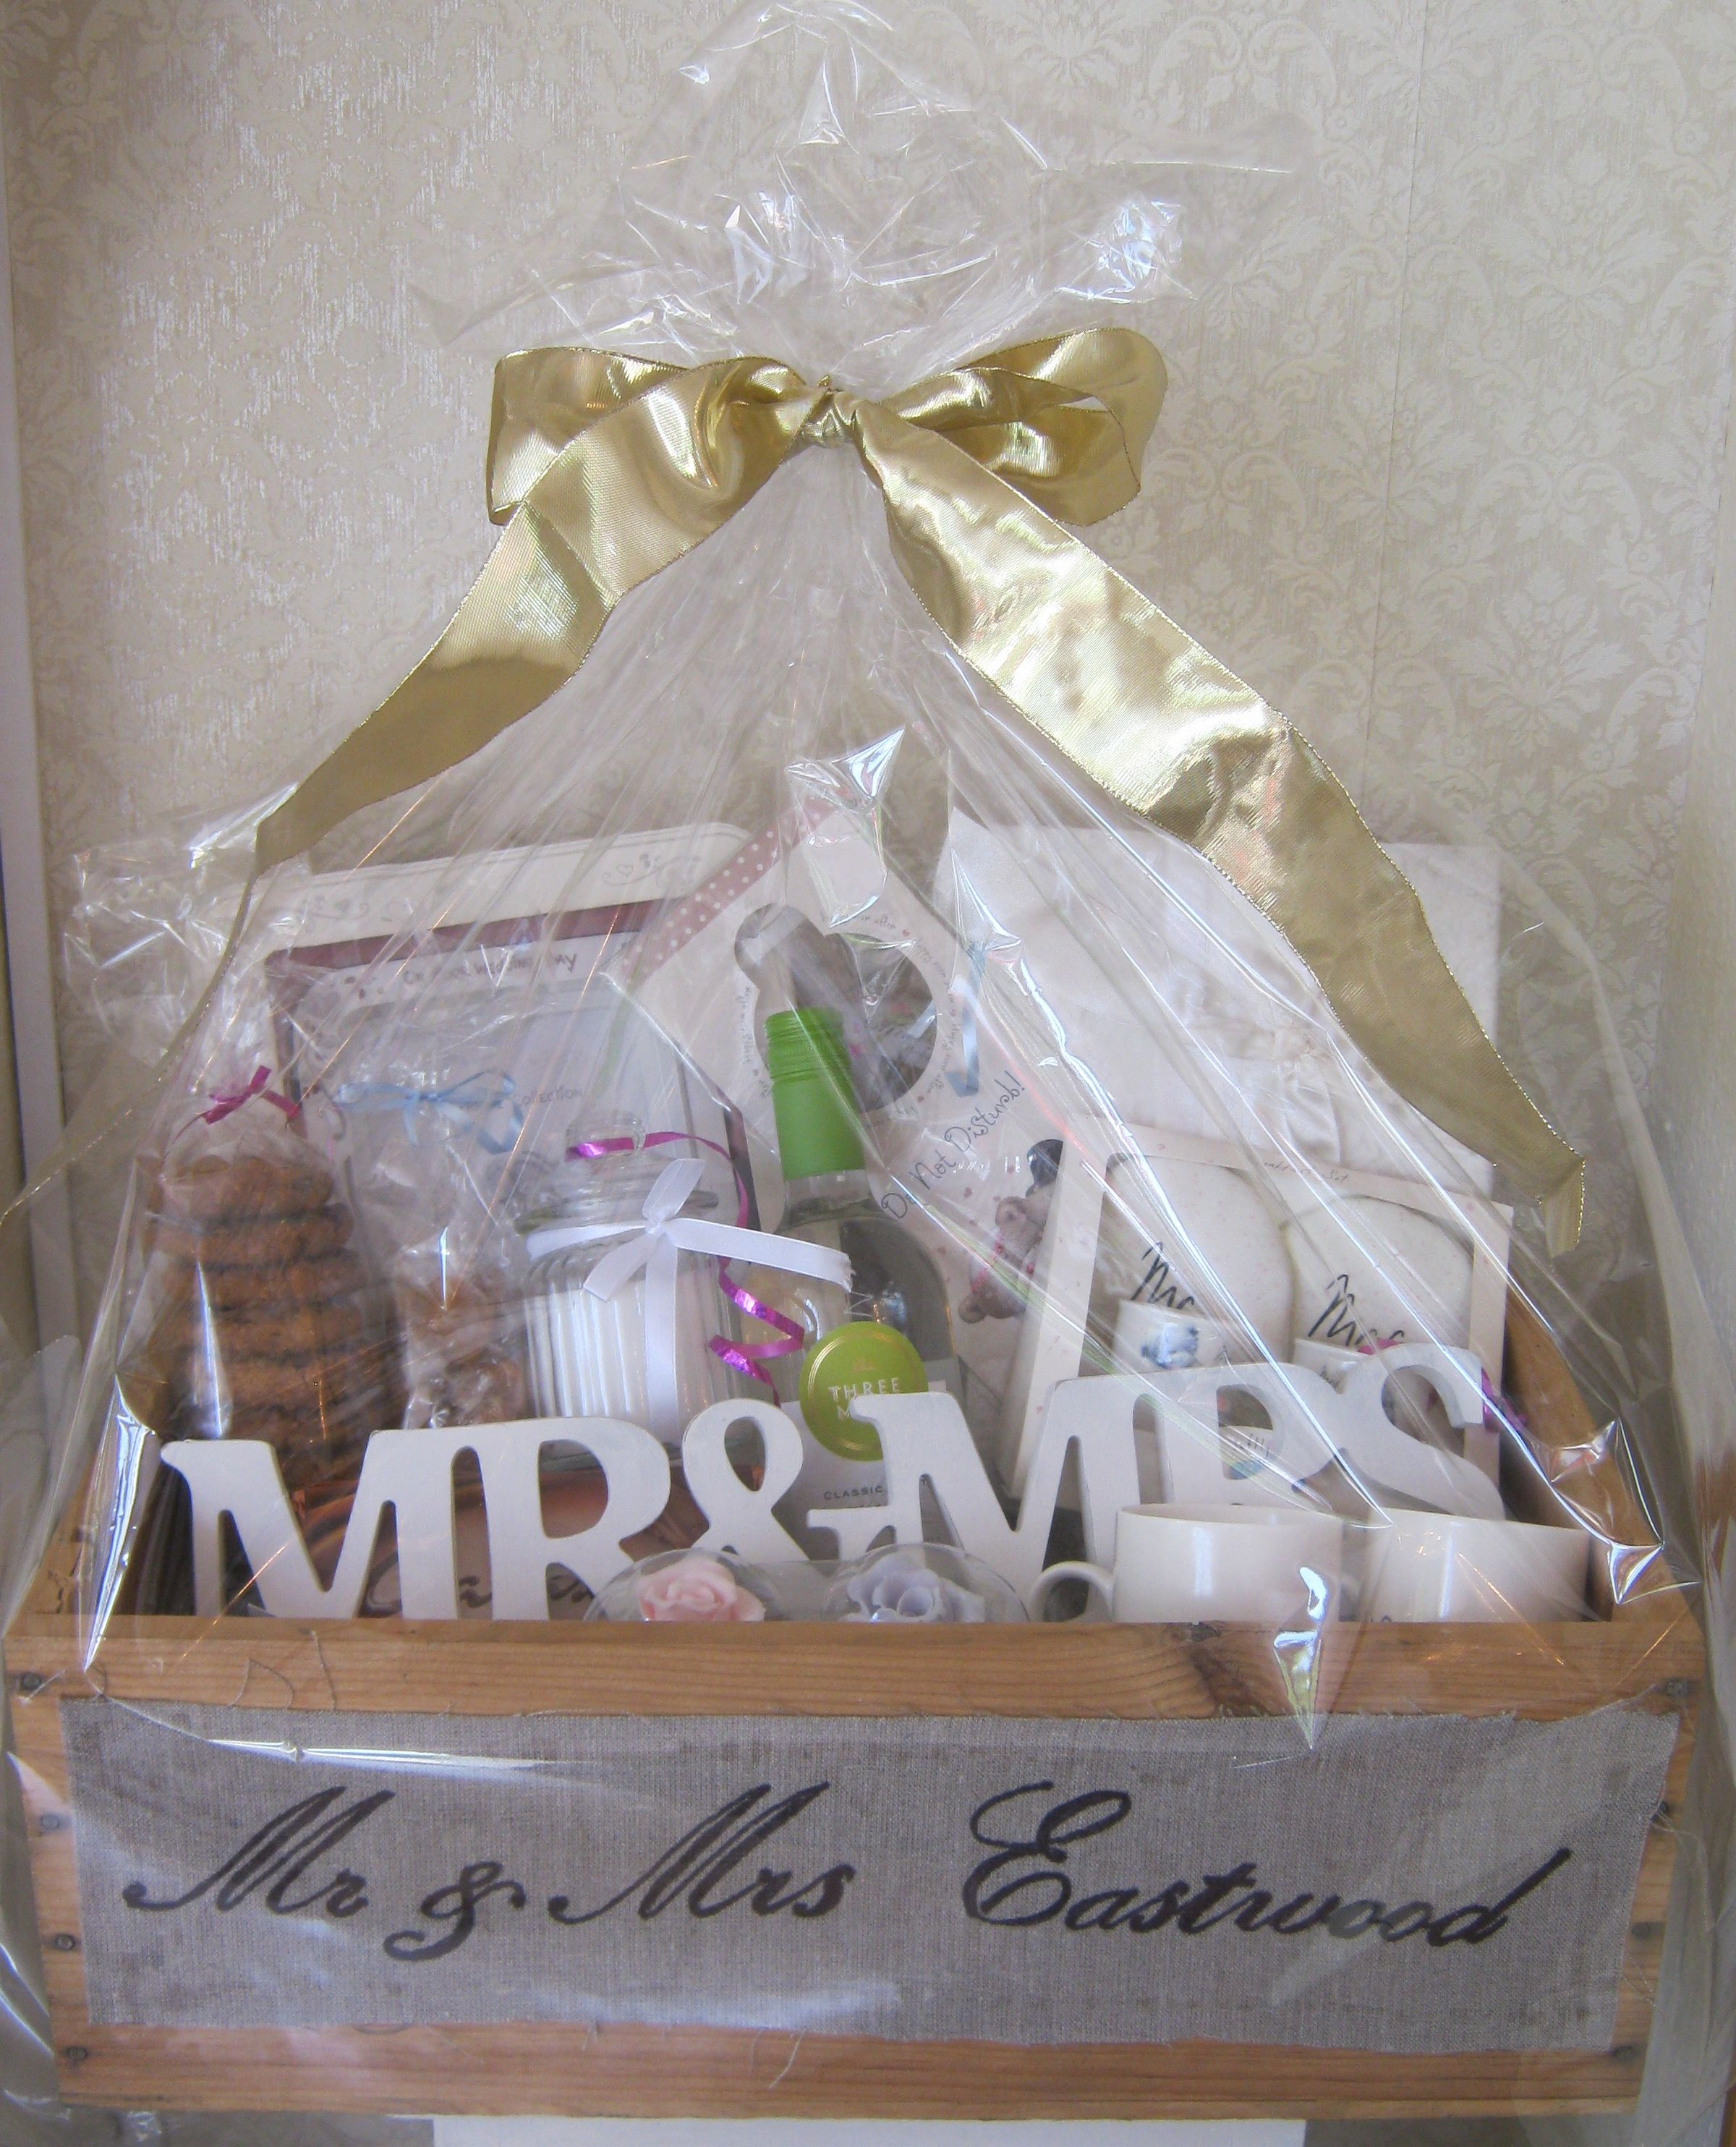 Wedding Hamper Www Chic Dreams Co Uk Wedding Gift Baskets Diy Wedding Gifts Creative Wedding Gifts